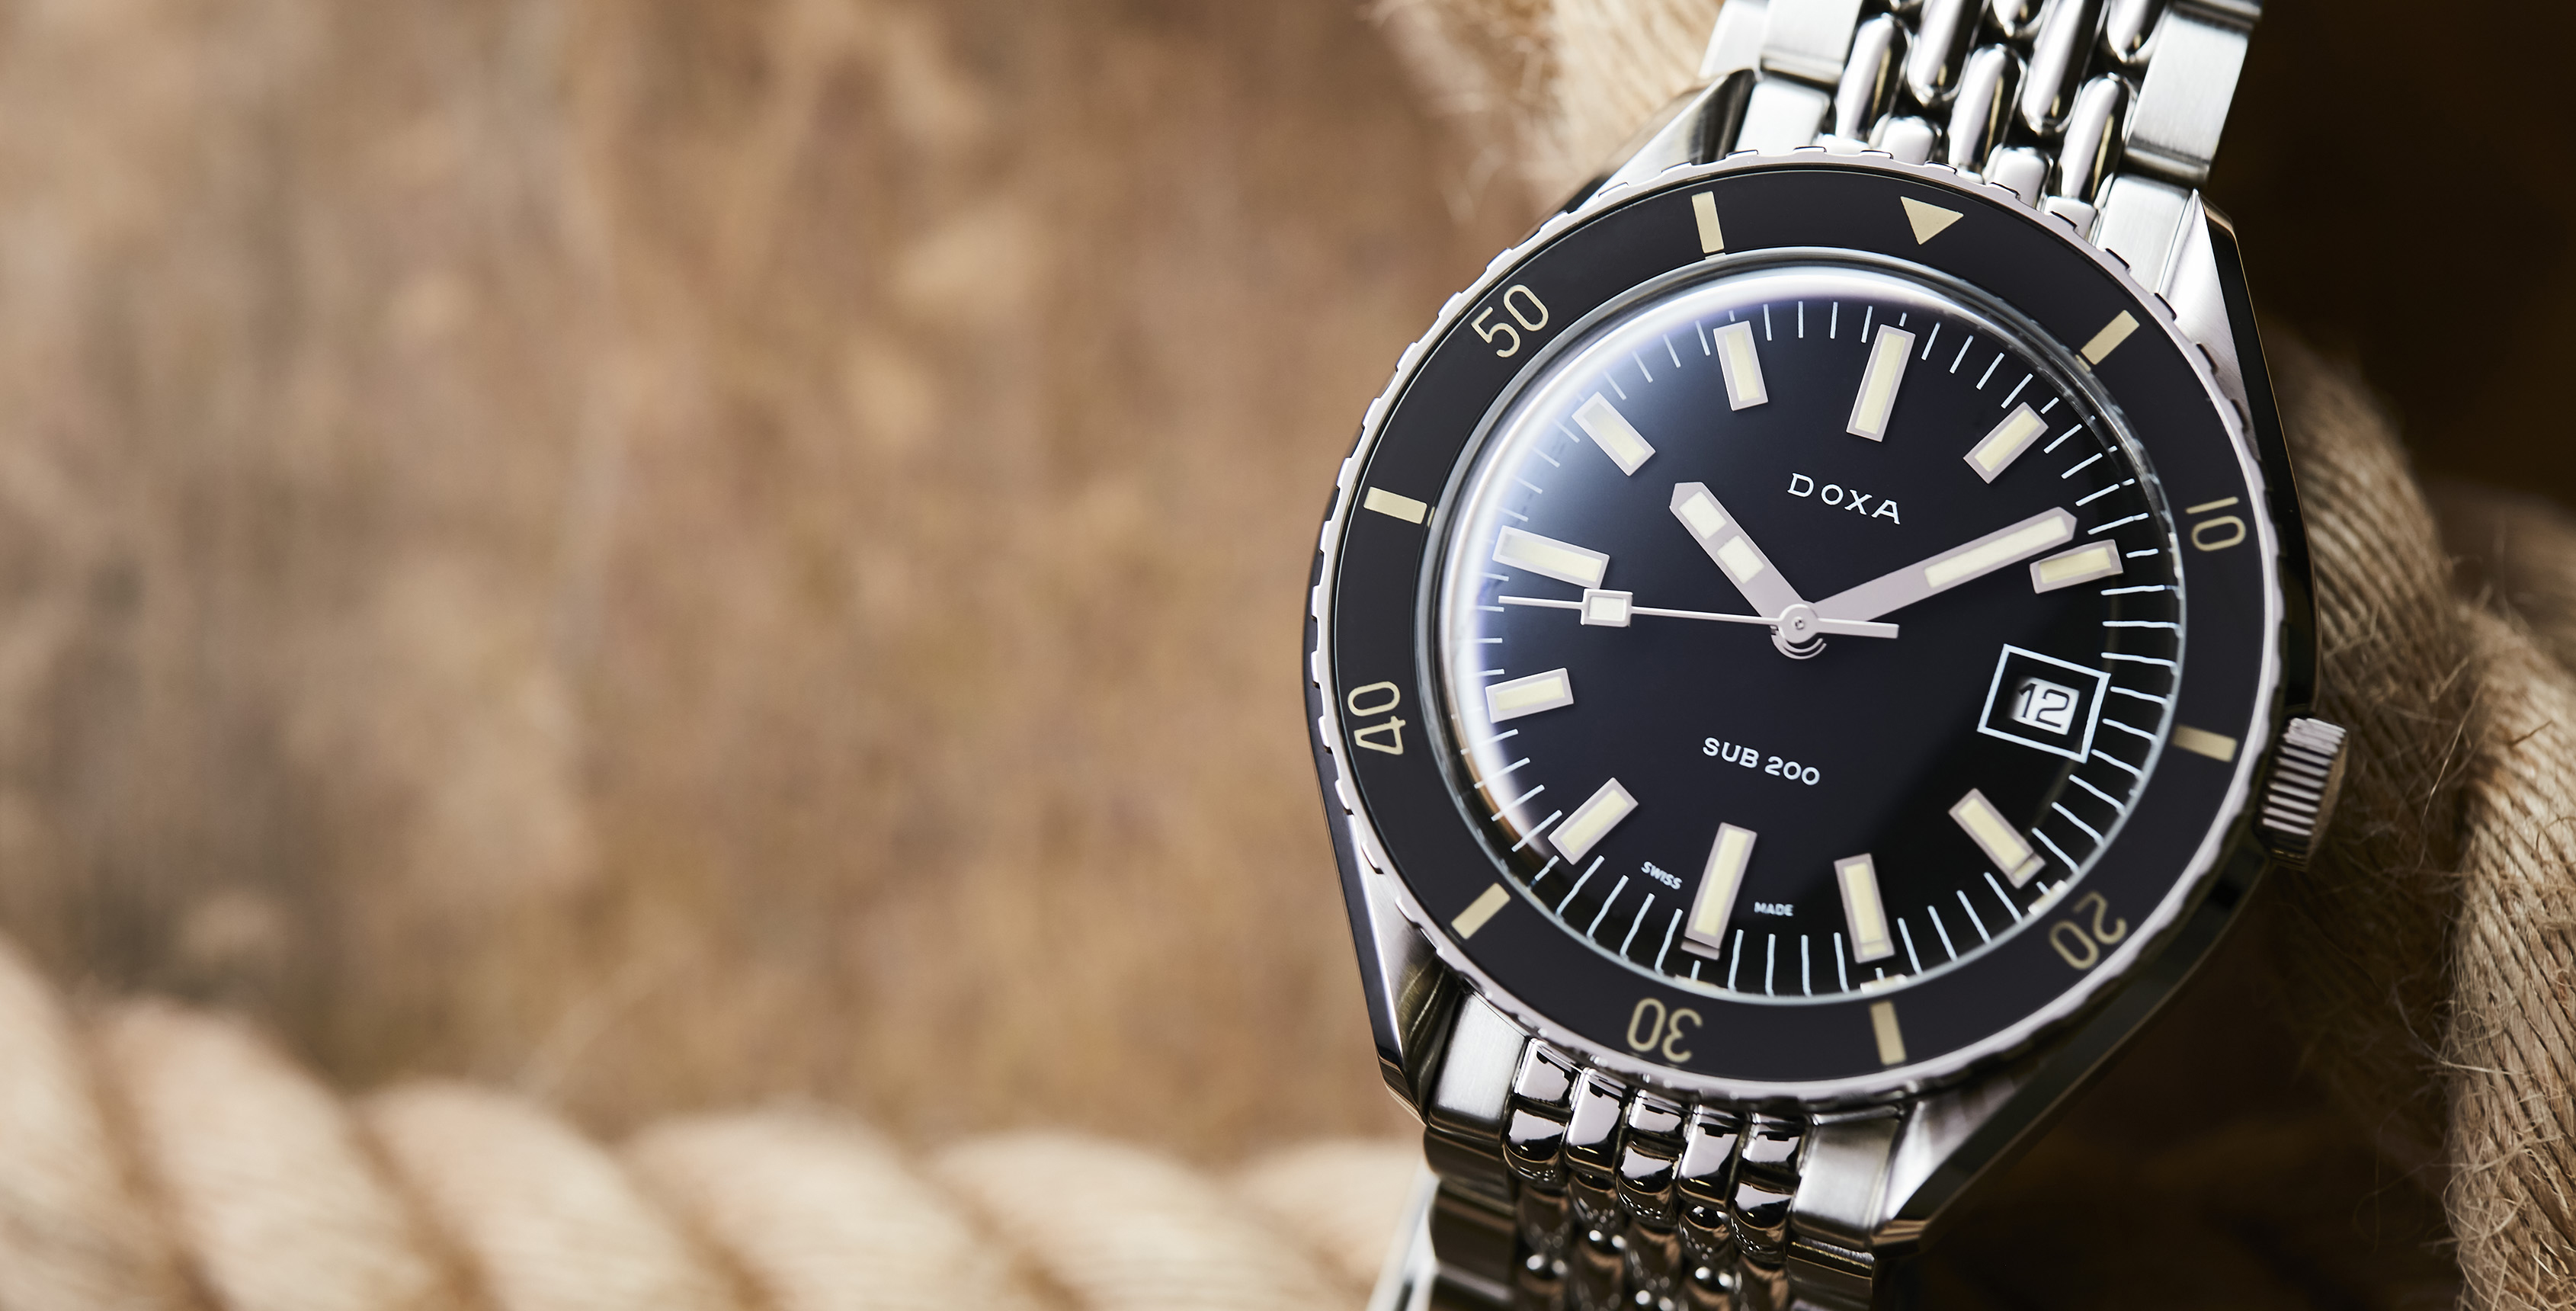 An owner's guide to the pros and cons of the DOXA SUB 200